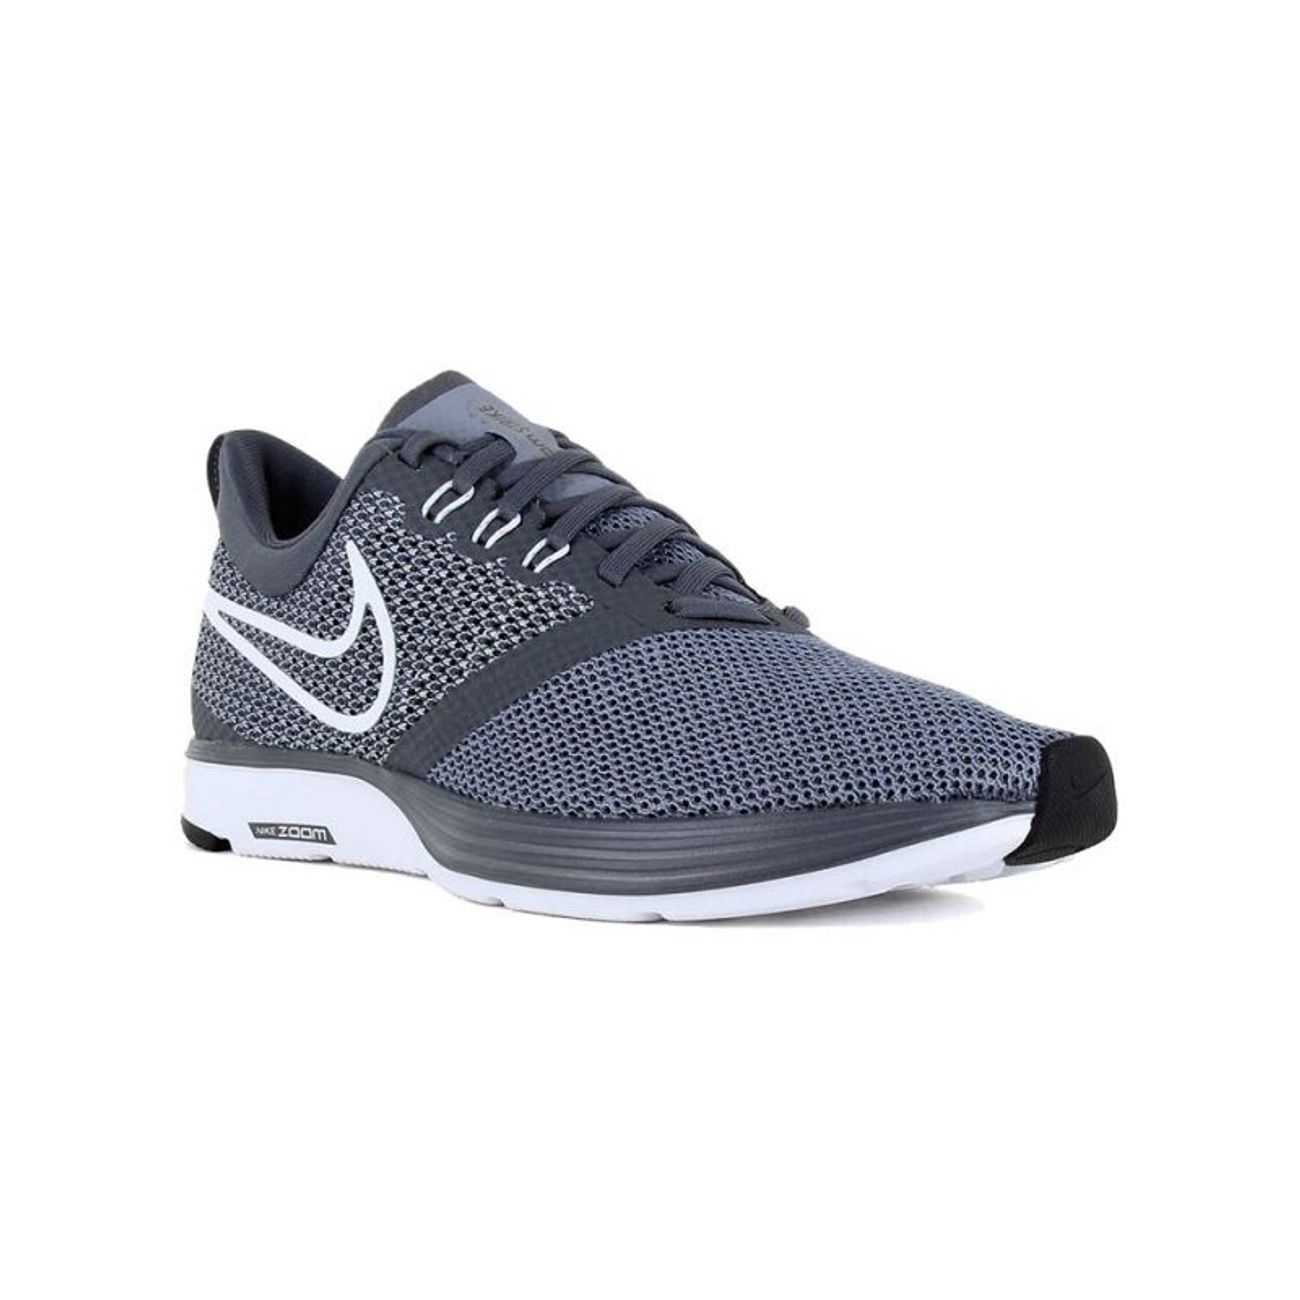 buy popular 49b6e 908f8 ... Course à pied homme NIKE Nike Zoom Strike gris, chaussures de running  homme ...